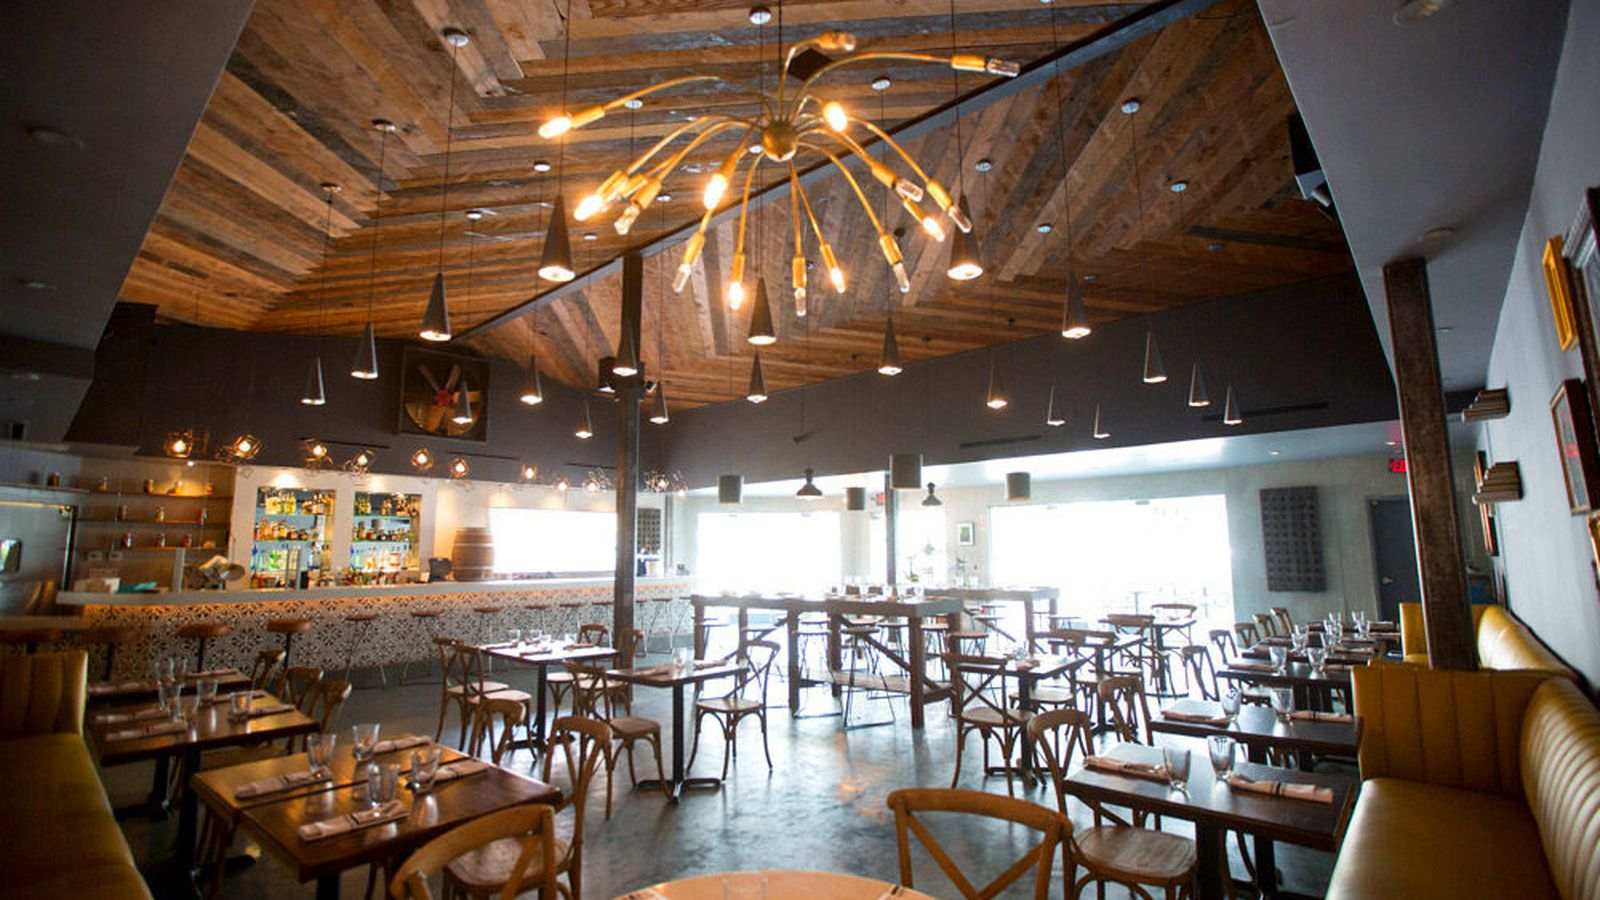 Madera Kitchen a Rustic Mediterranean Eatery in Hwood  Eater LA